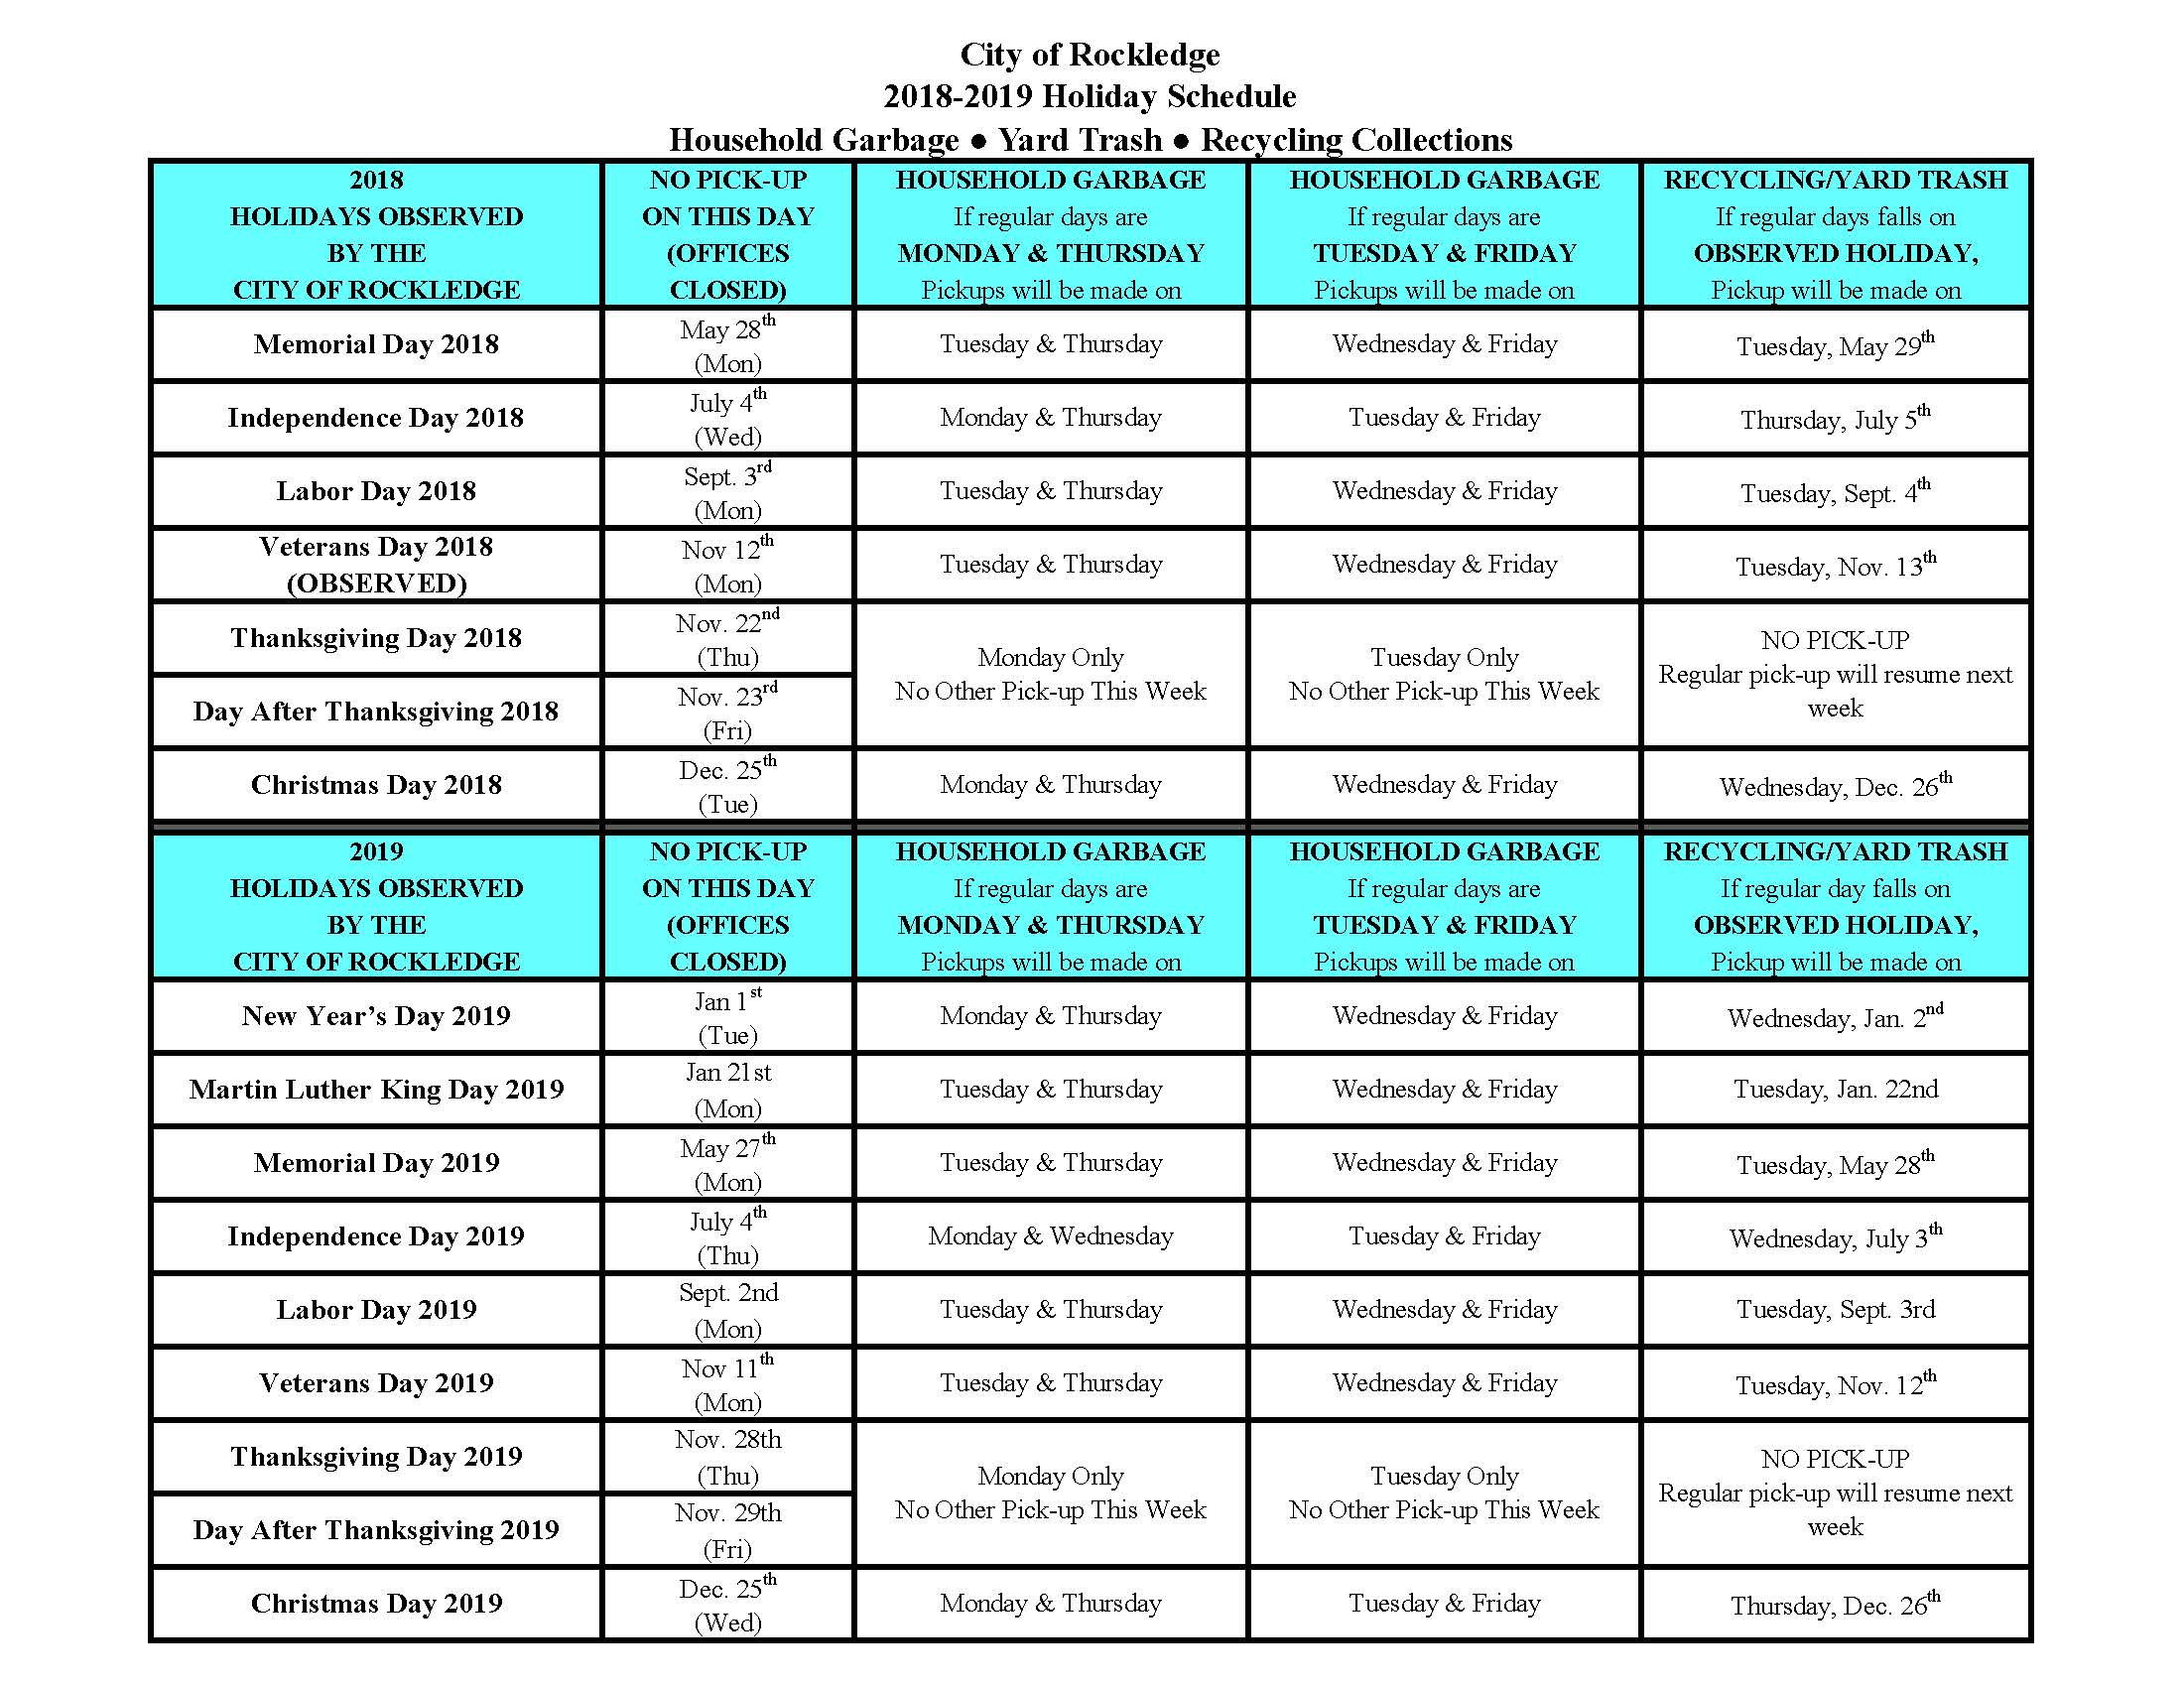 Copy of 2018-2019 HOLIDAY SCHEDULE